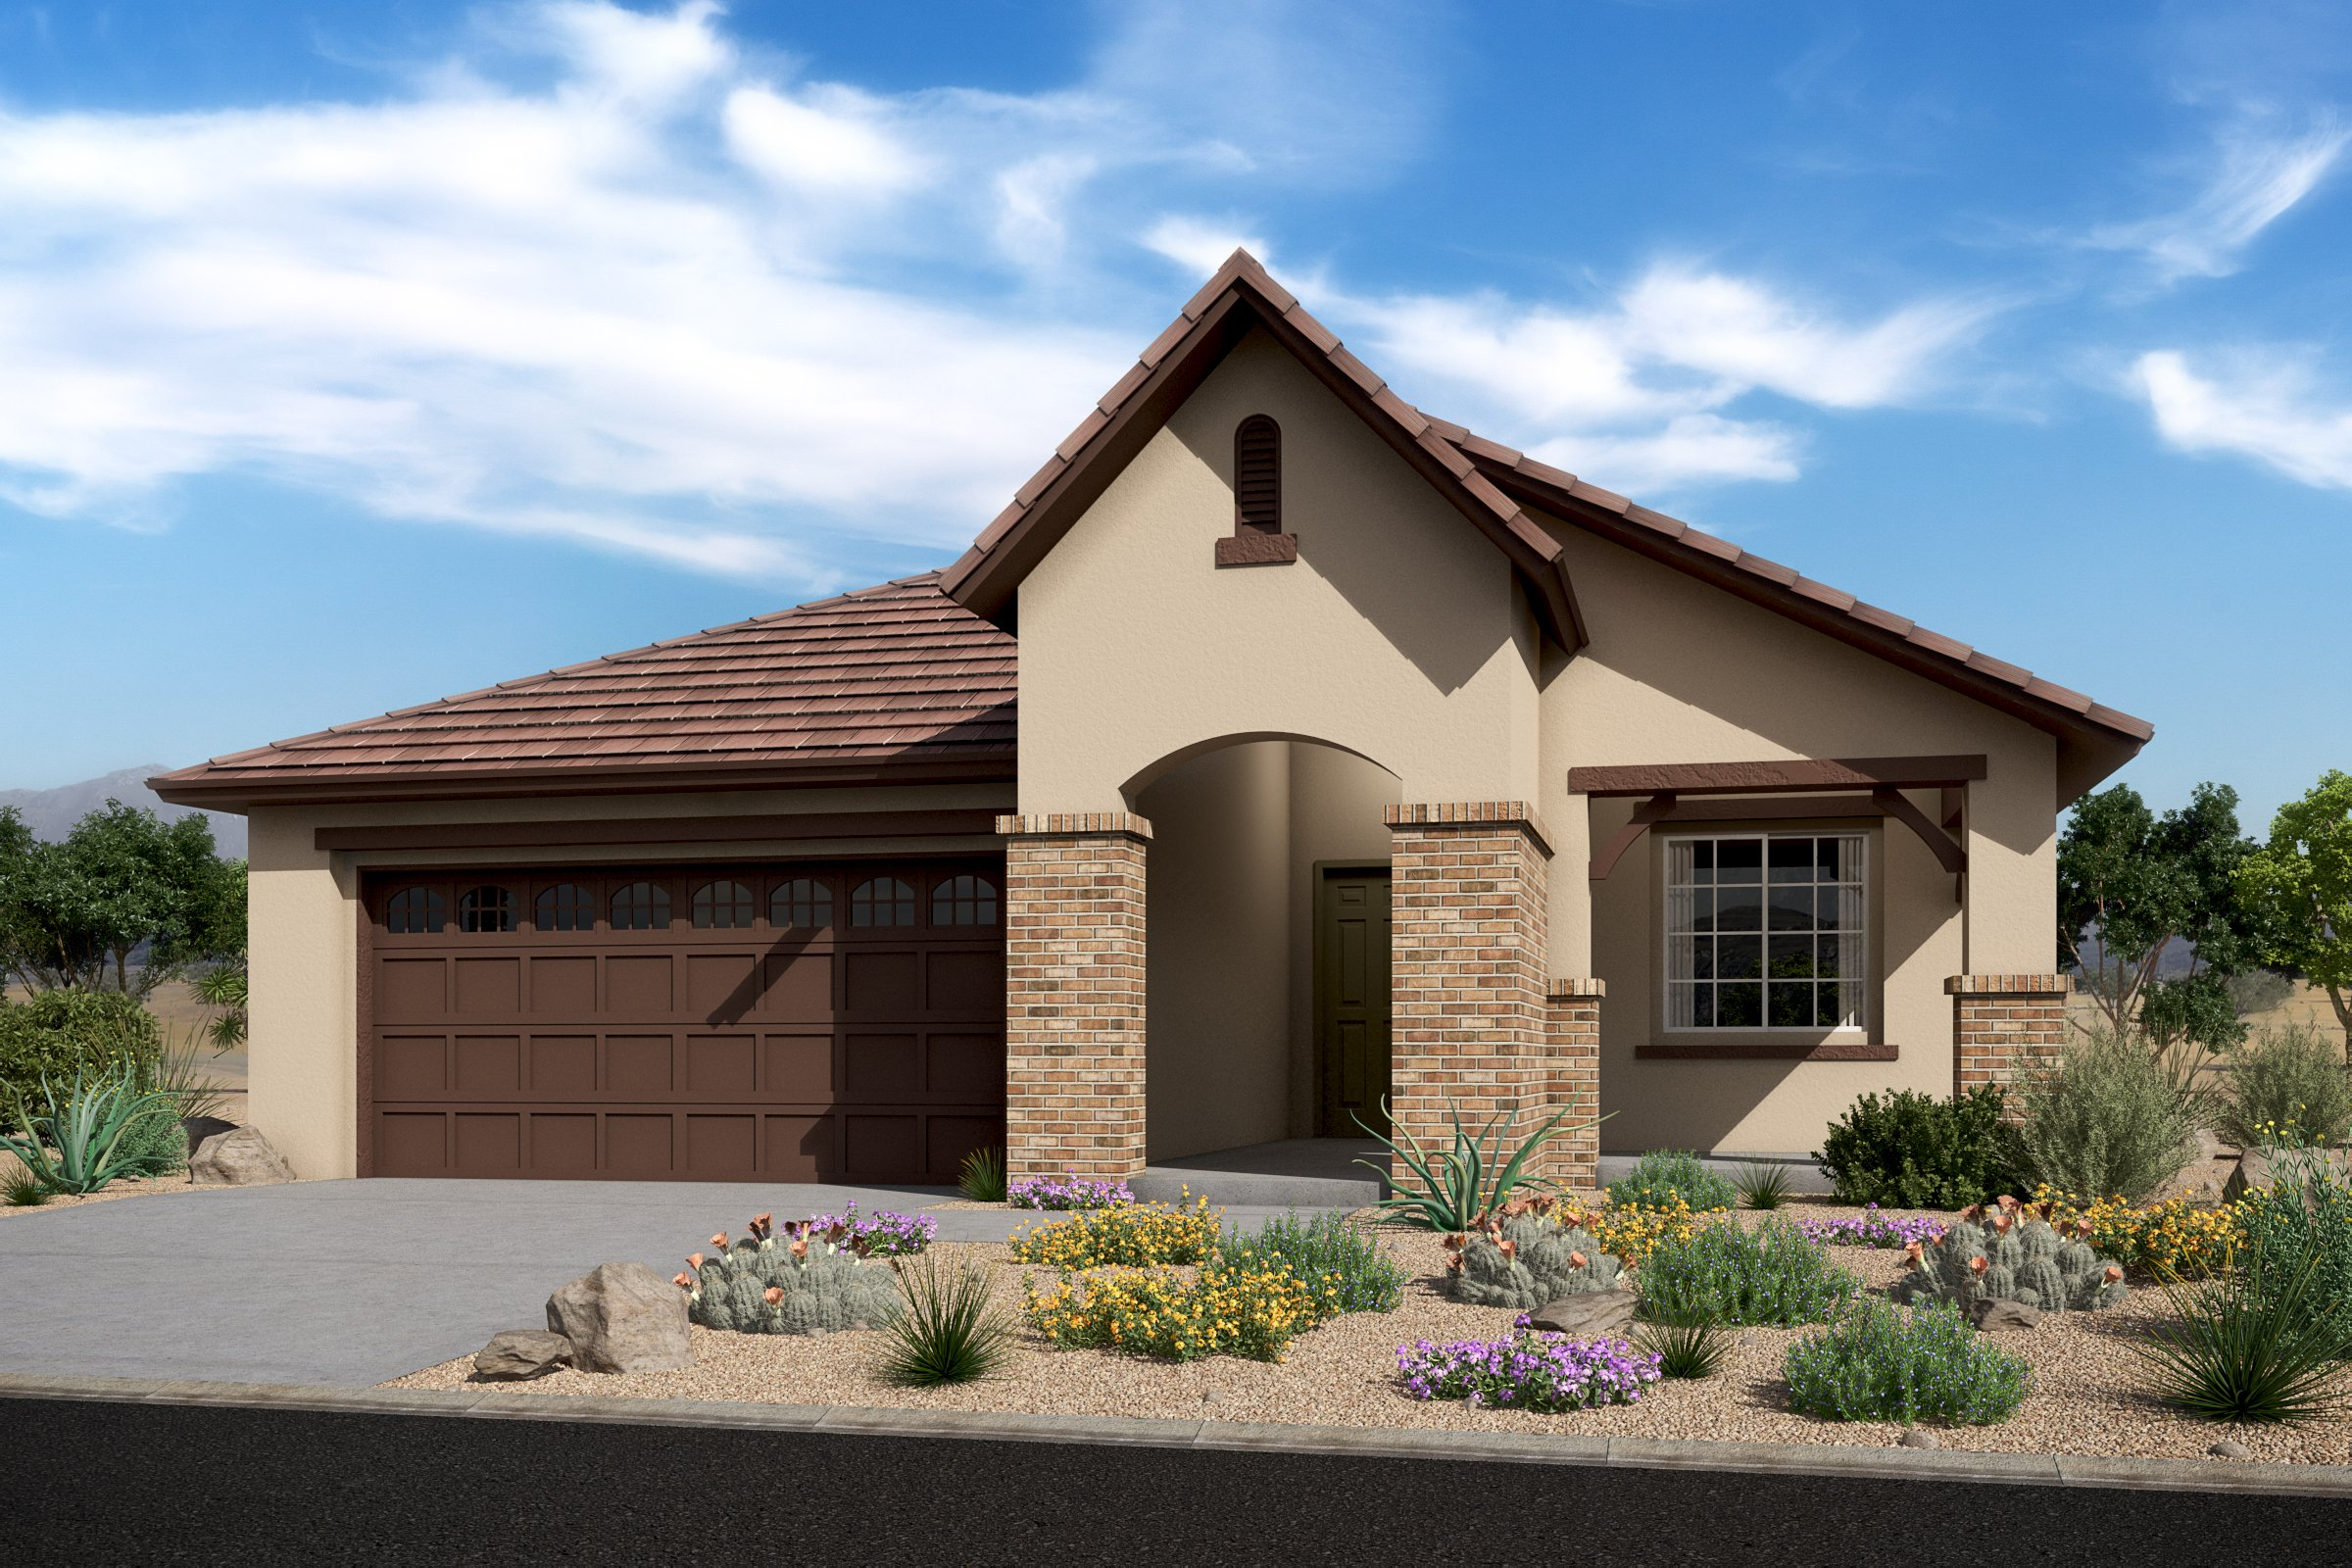 Showcase home of the month verrado for Verrado home builders